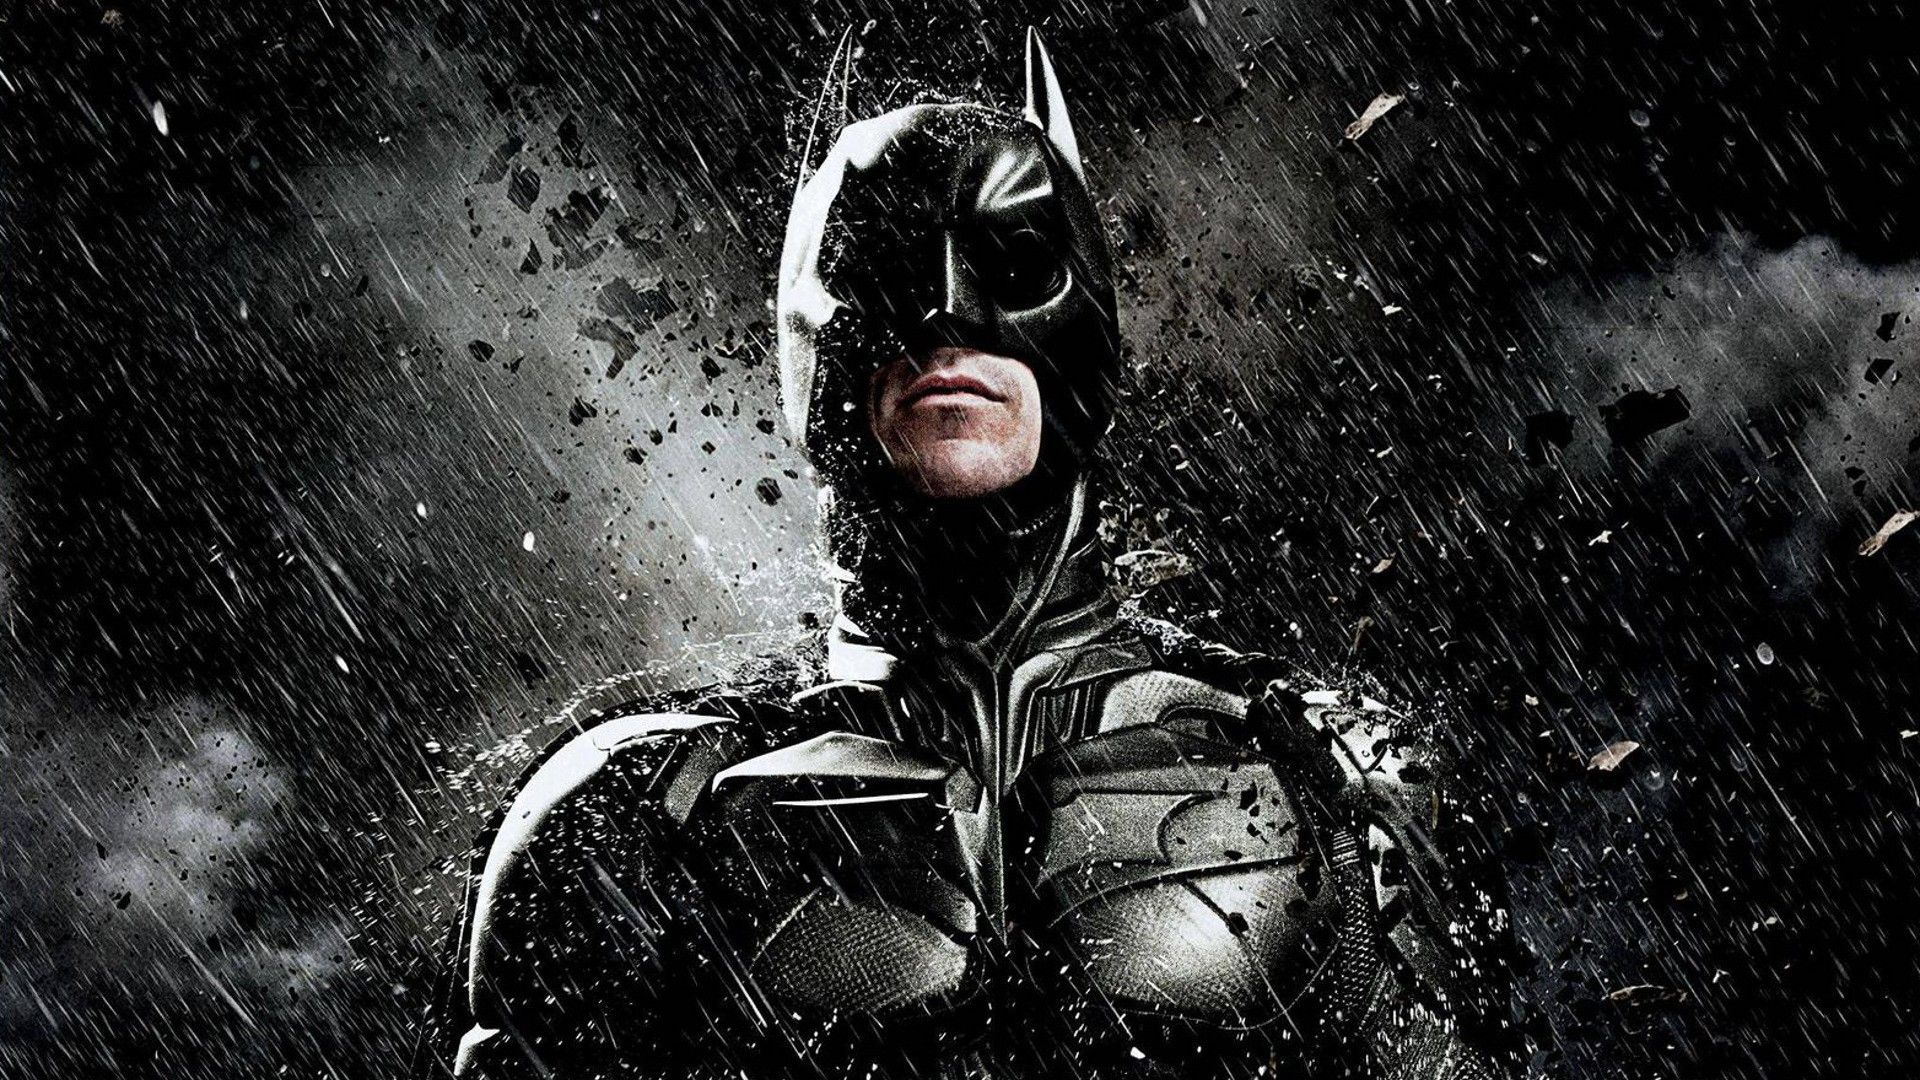 classic movie wallpapers hd dark knight rises movie hd | film